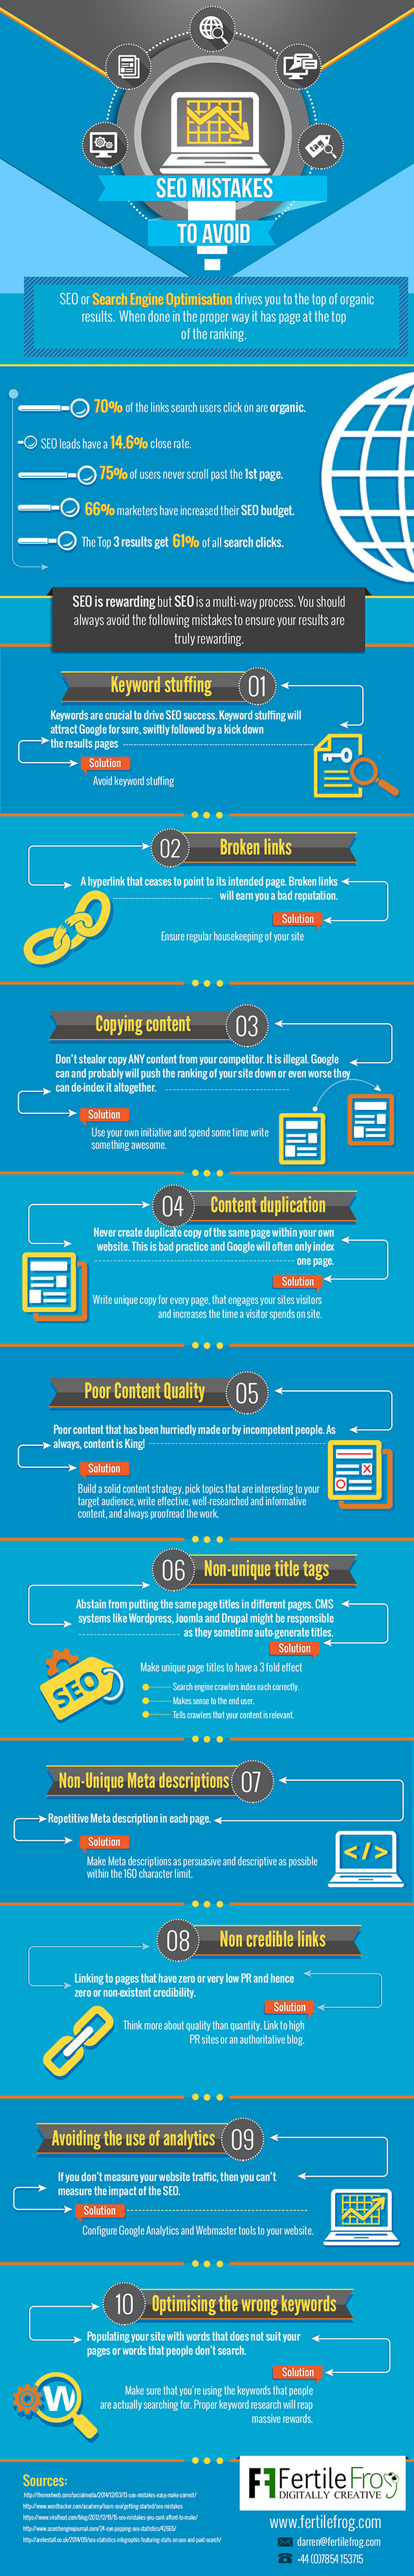 Infographic: SEO Mistakes to Avoid